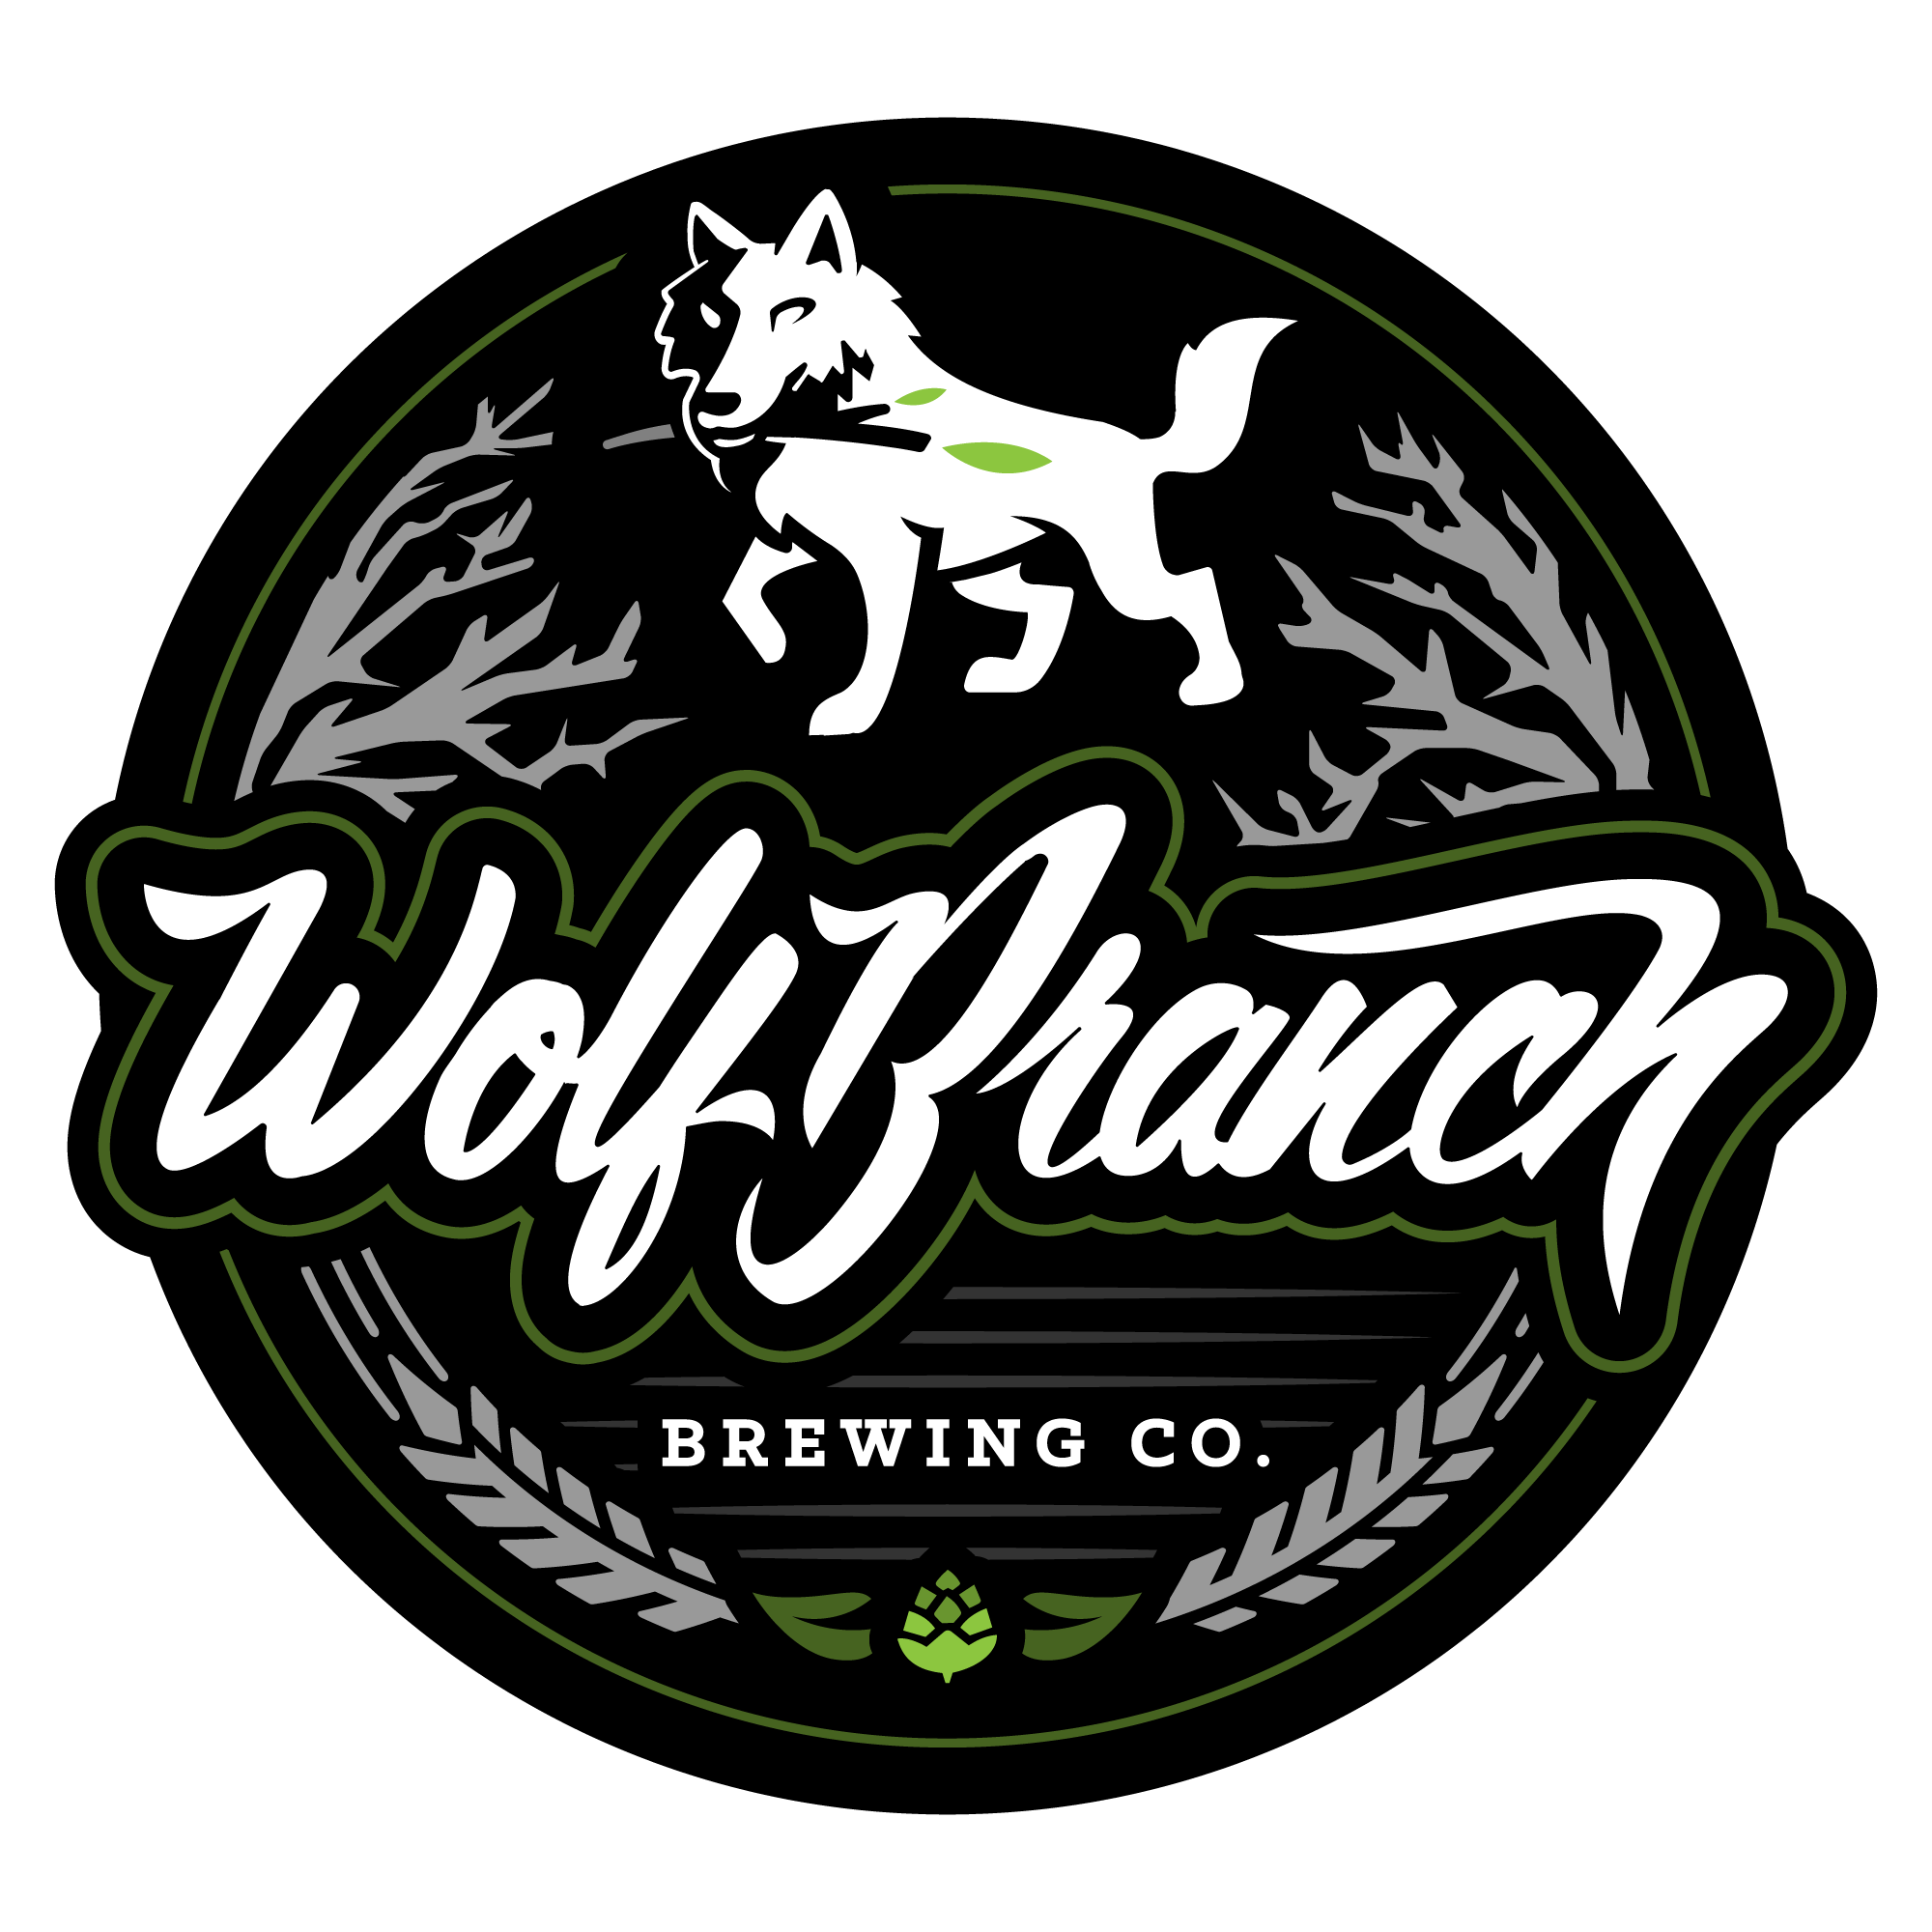 Wolf Branch Brewing Co.